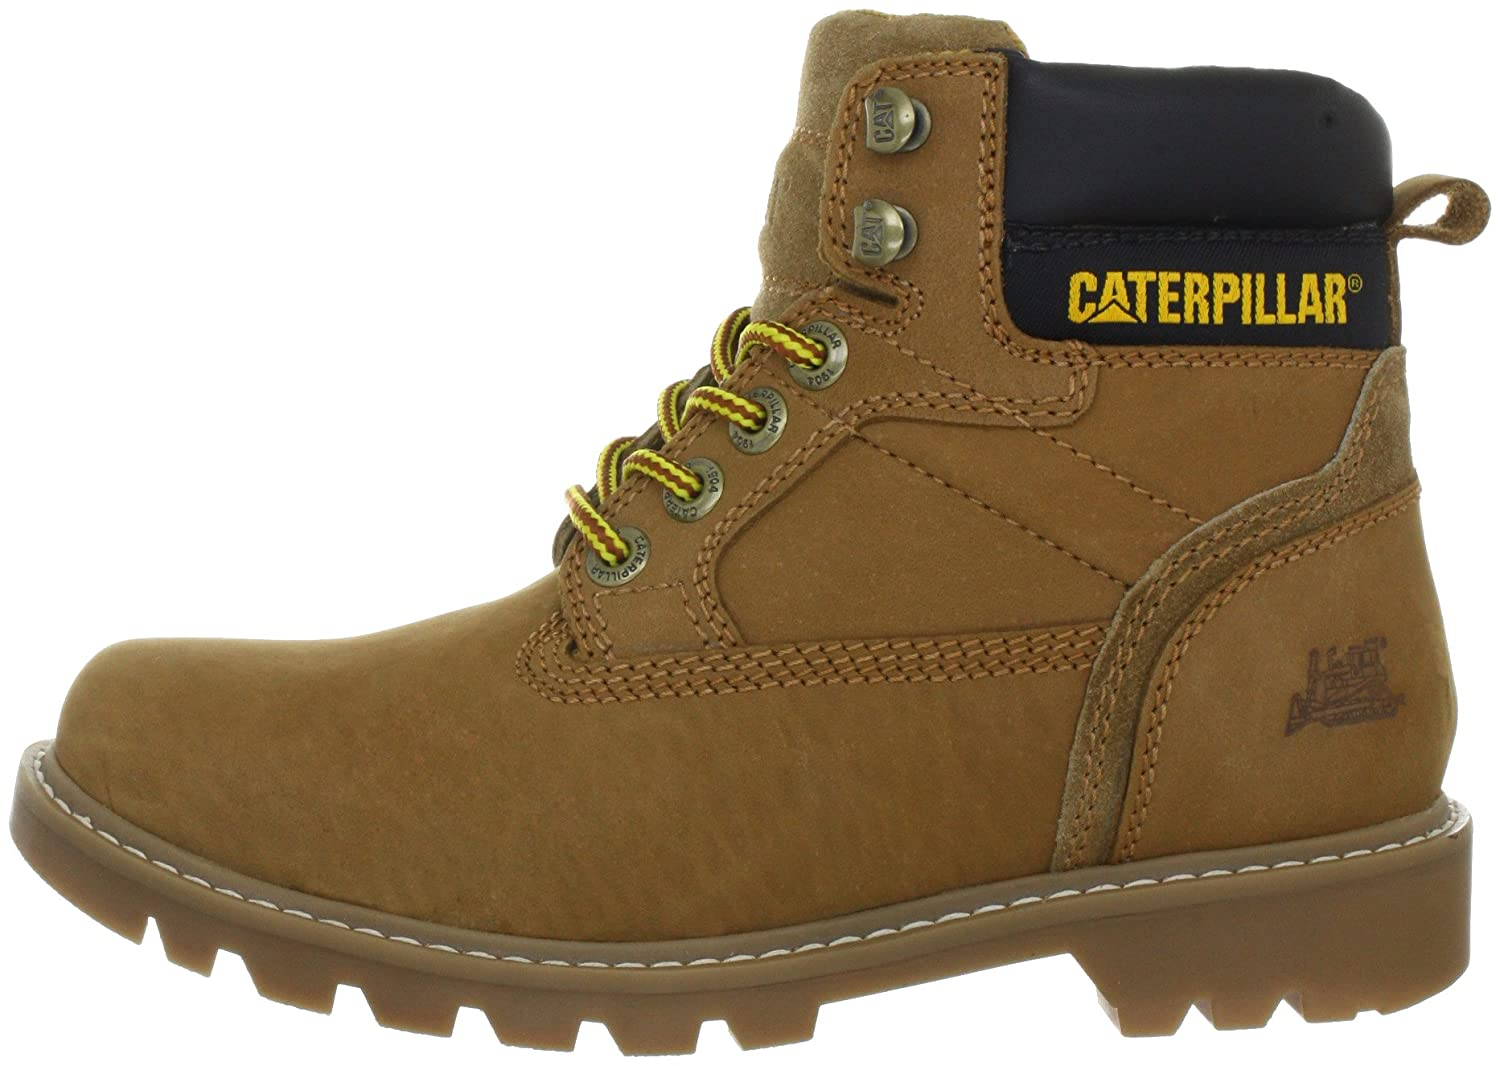 Cat Footwear WILLOW P305056 - Botines fashion de cuero para mujer: Amazon.es: Zapatos y complementos